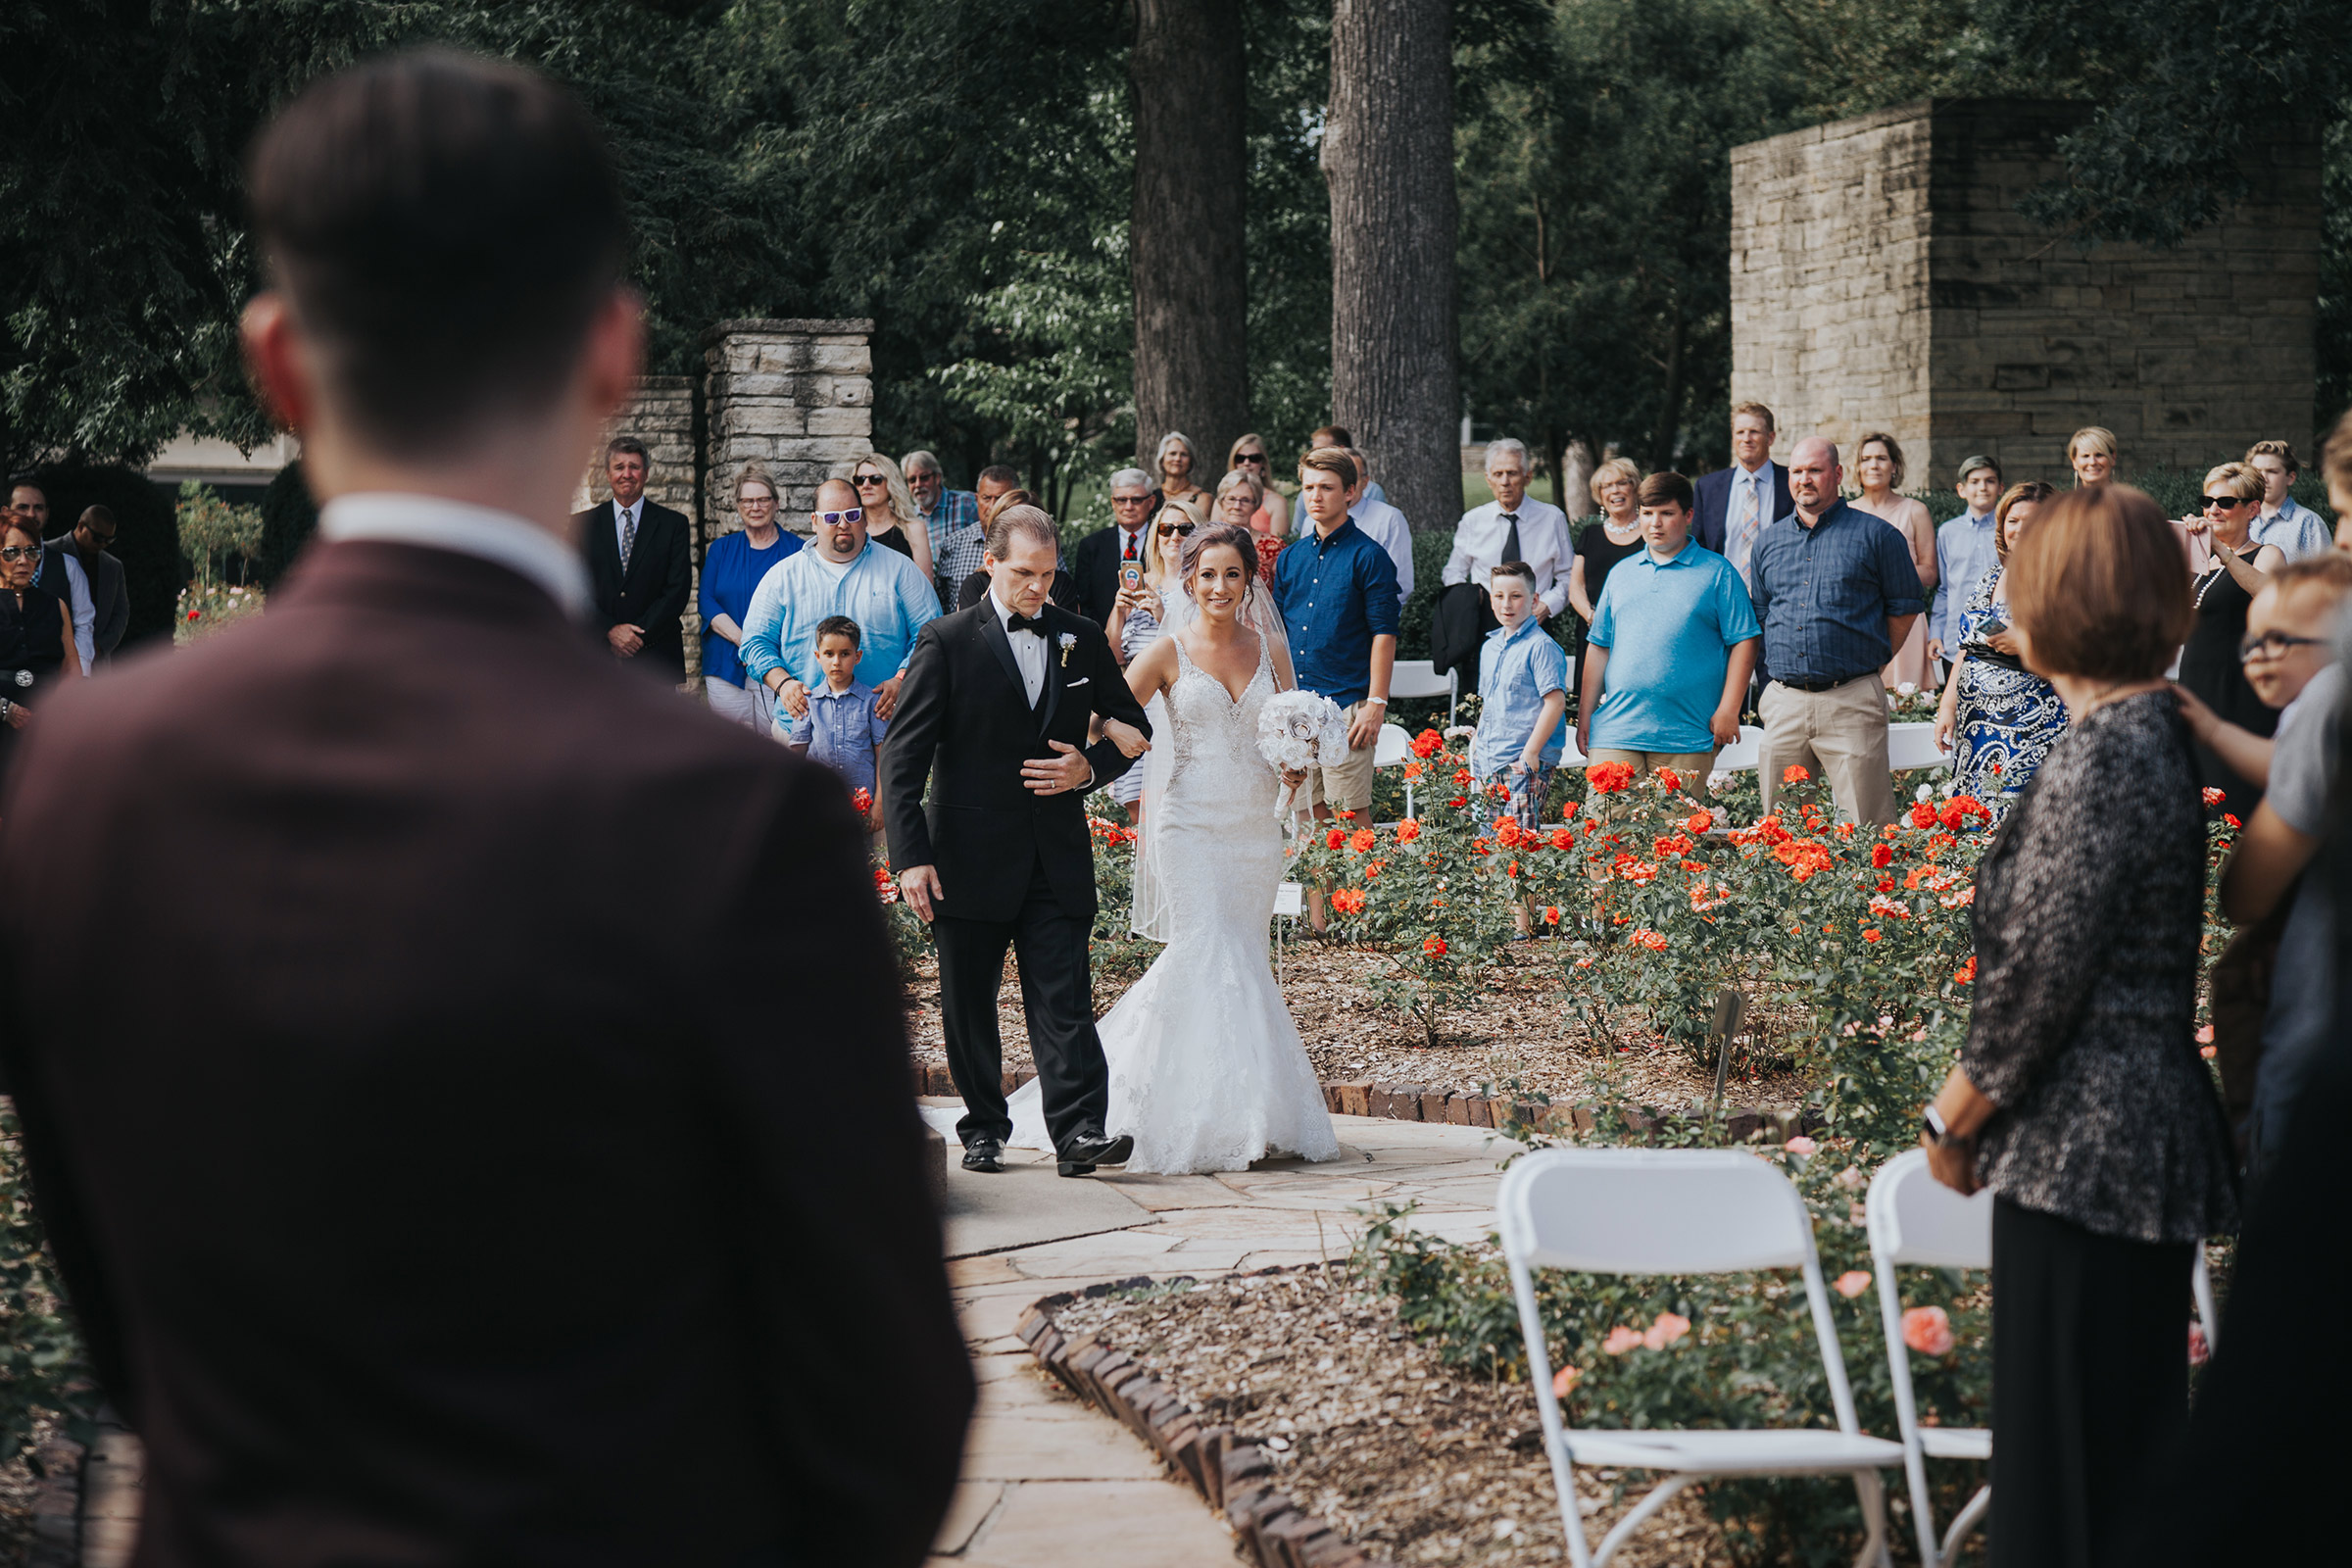 bride-walking-down-aisle-with-dad-to-groom-during-ceremony-desmoines-iowa-rose-garden-raelyn-ramey-photography.jpg